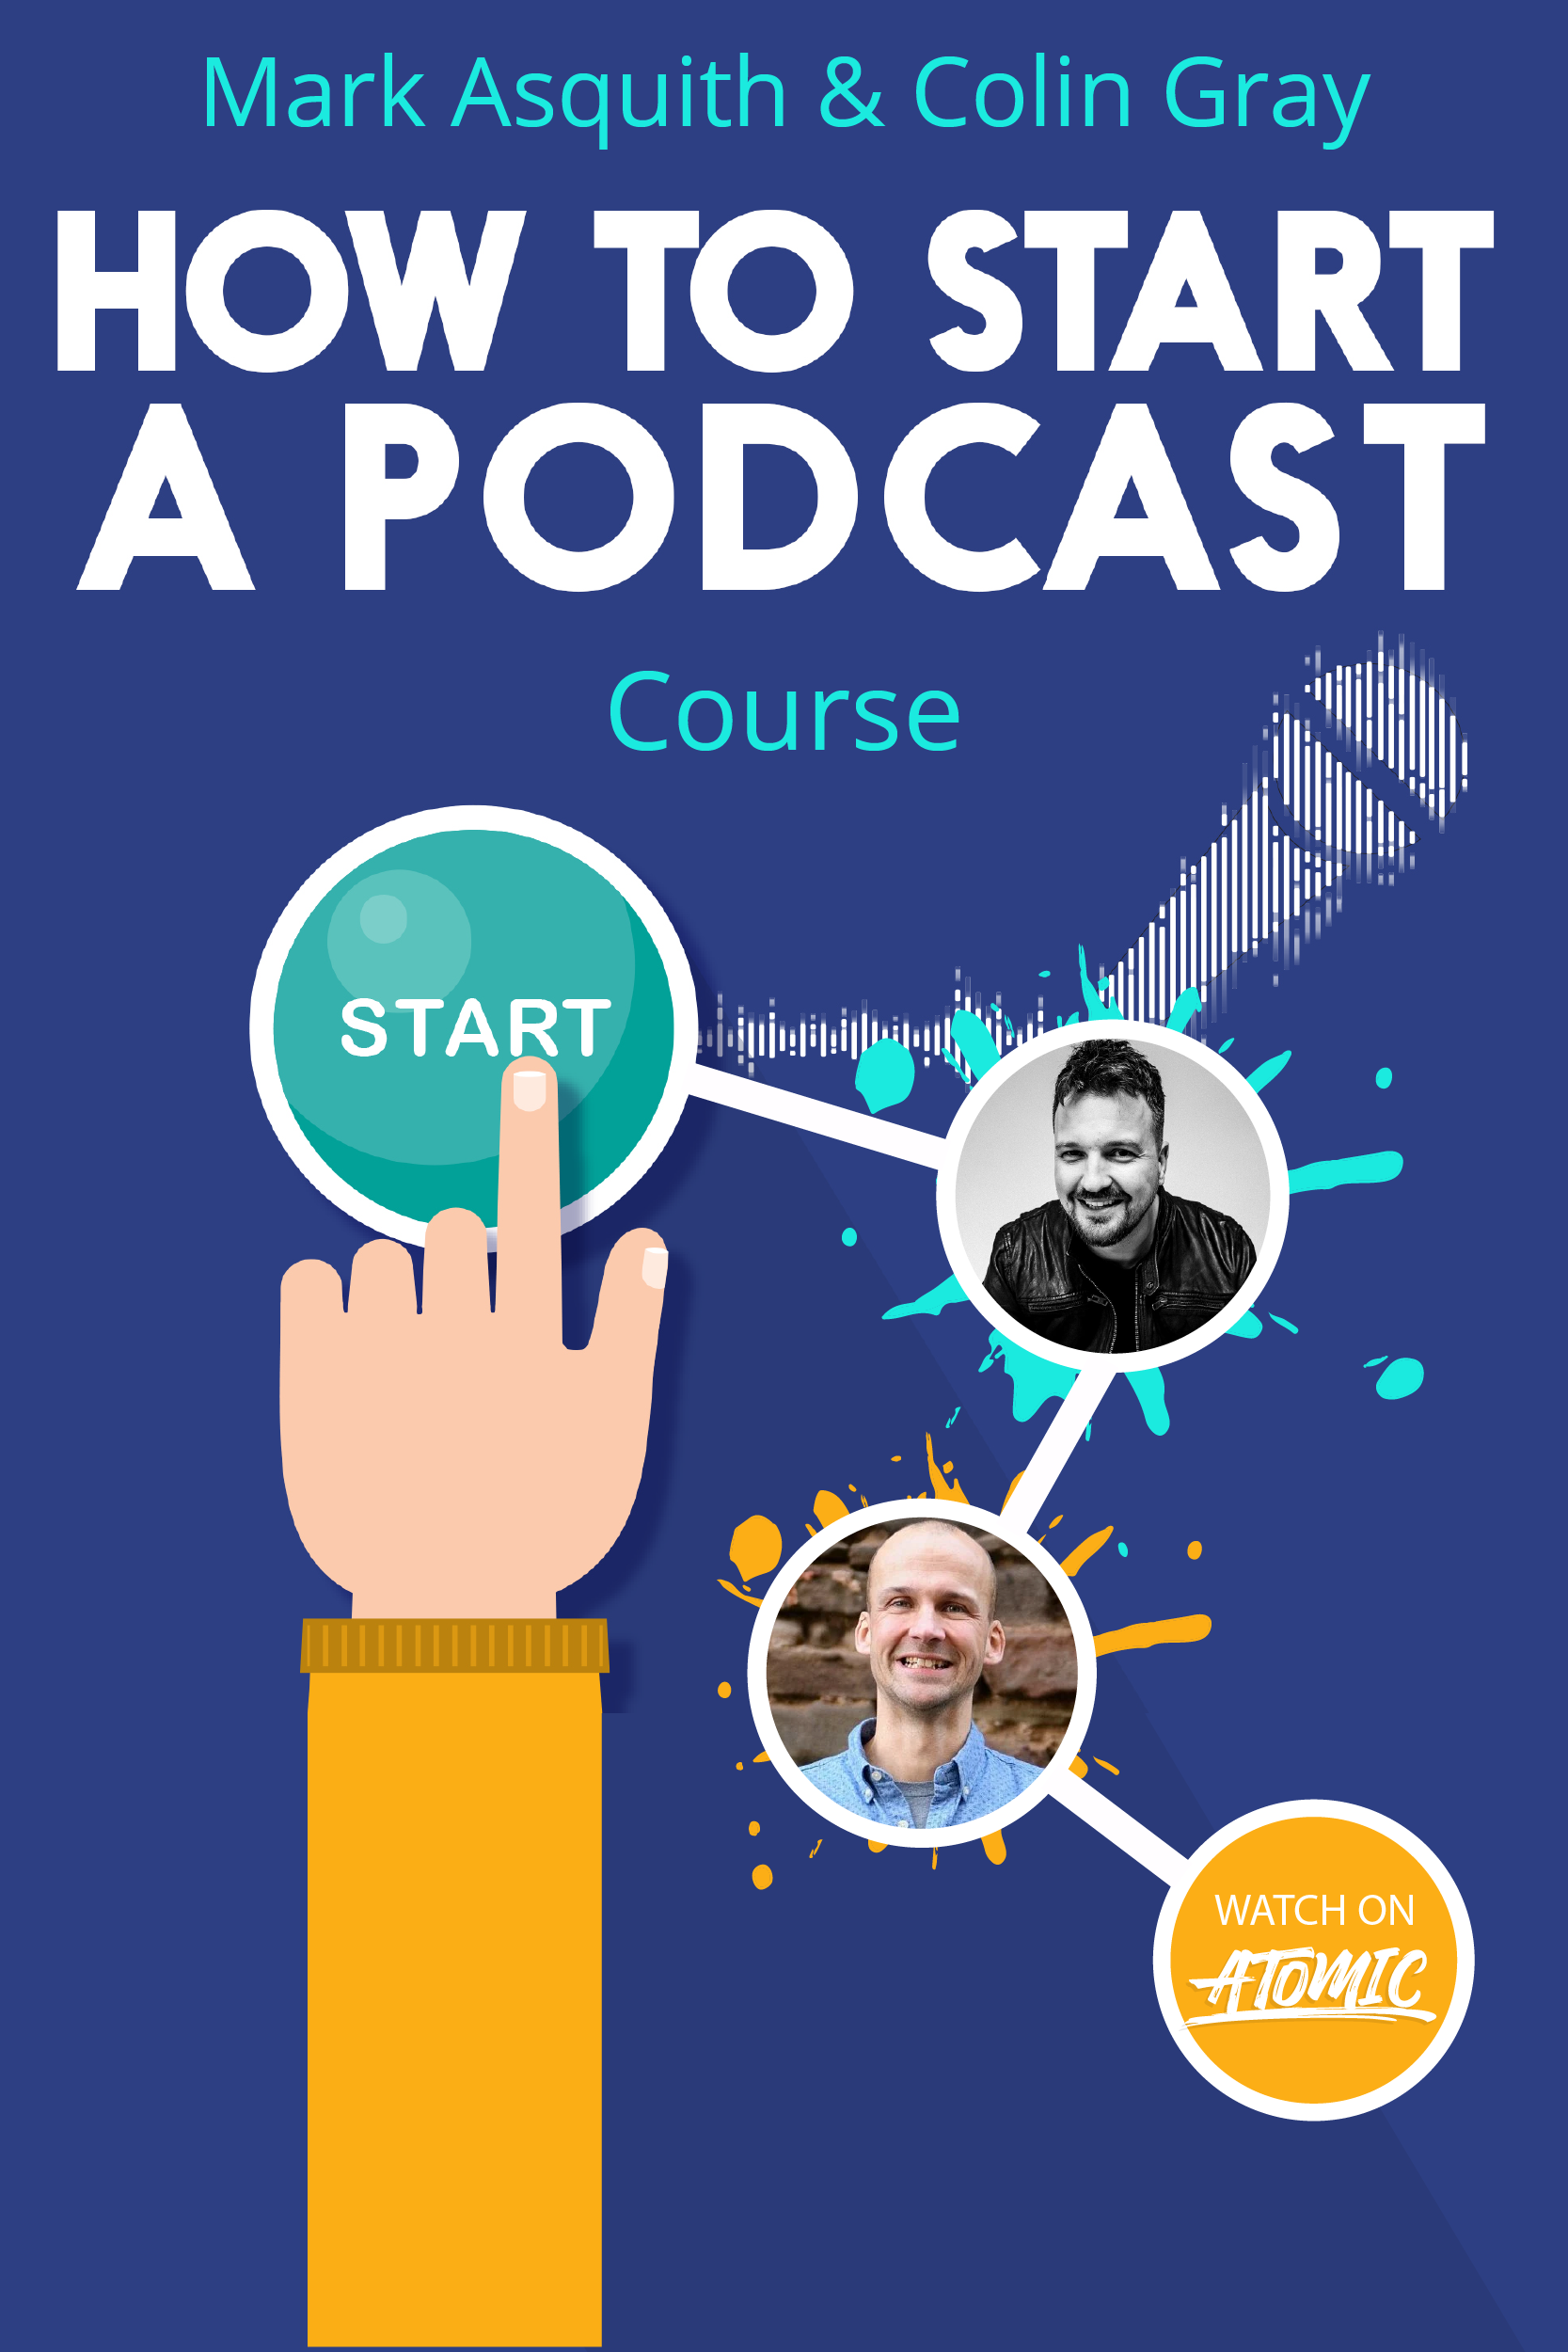 How-to-Start-a-Podcast-Portrait